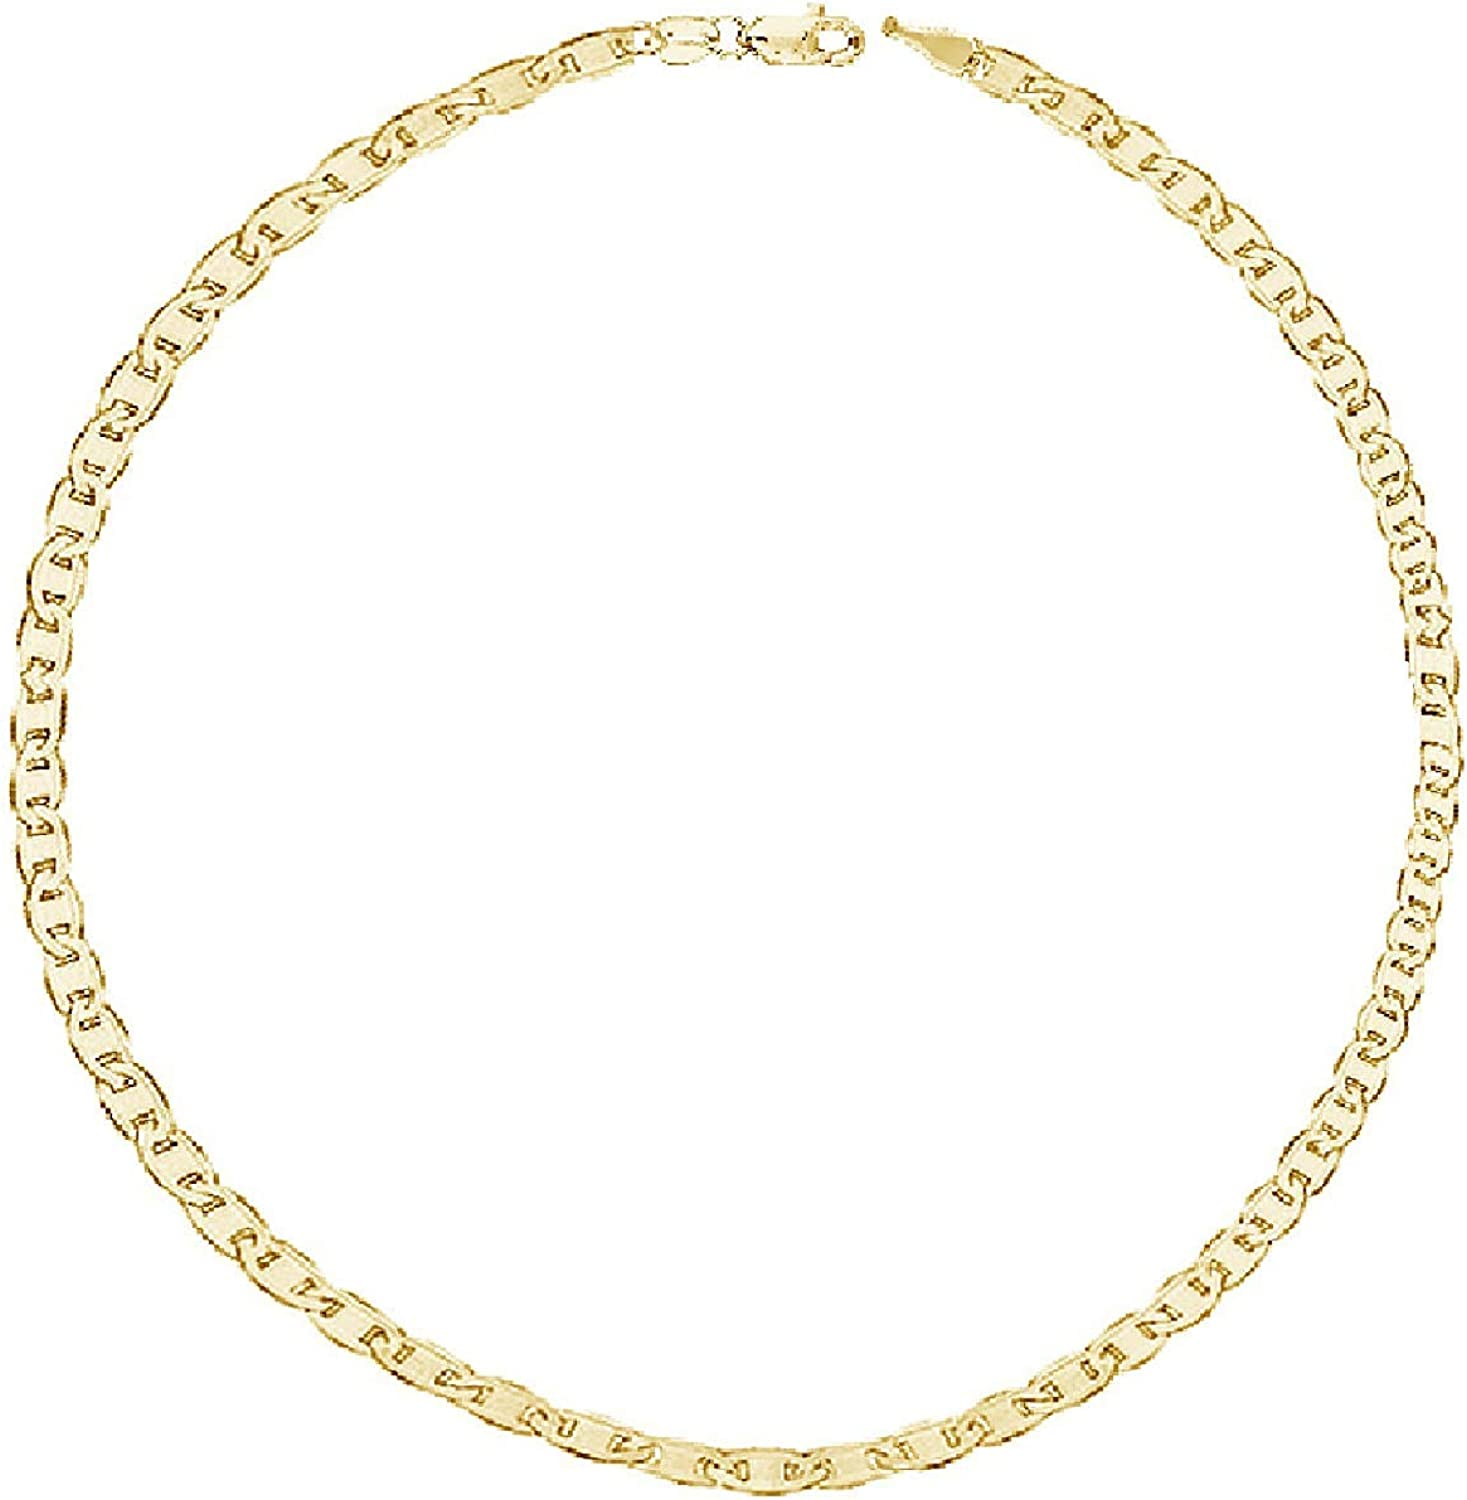 "14K SOLID Yellow Gold 1.2mm, 1.7mm, 3.2mm, 4.5mm, 5.5mm, OR 6.3mm Shiny Mariner-Link Chain Necklace for Pendants with Spring-Ring Or Lobster-Claw Clasp (7"" 8"" 8.5"" 10"" 16"", 18"" 20"" 22"" 24"" 30"")"